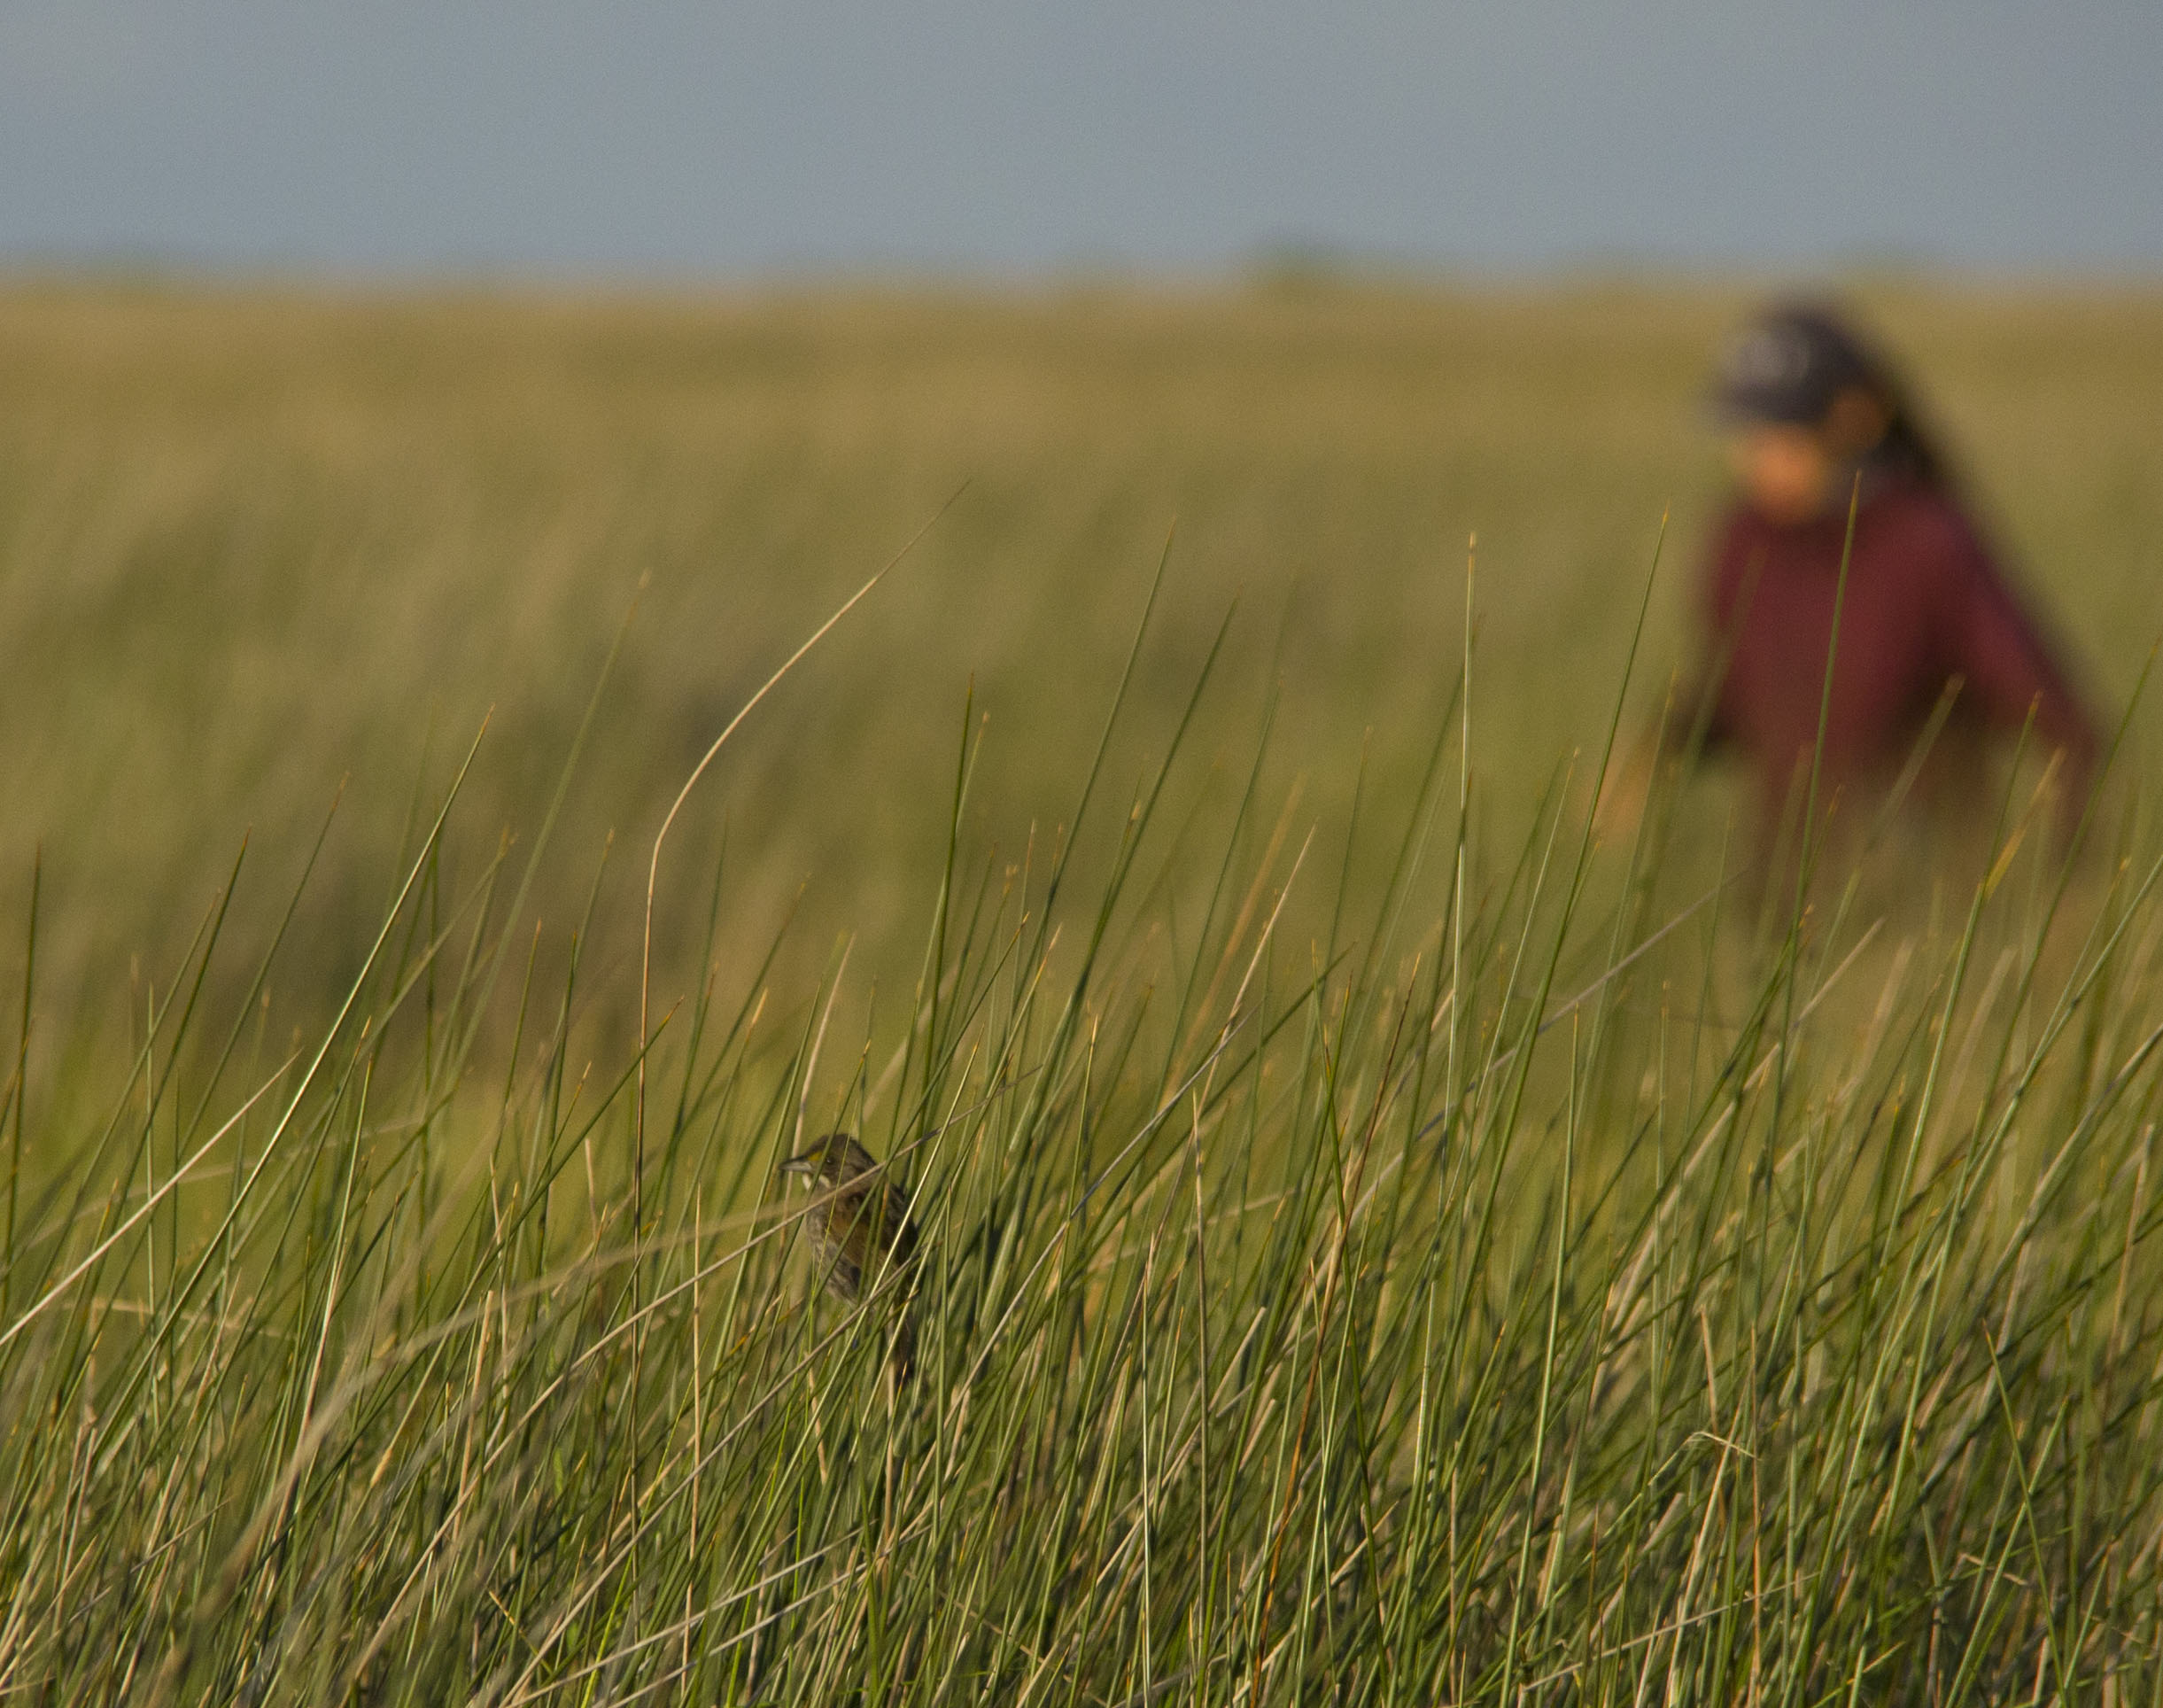 sparrow in the field1.jpg thumbnail